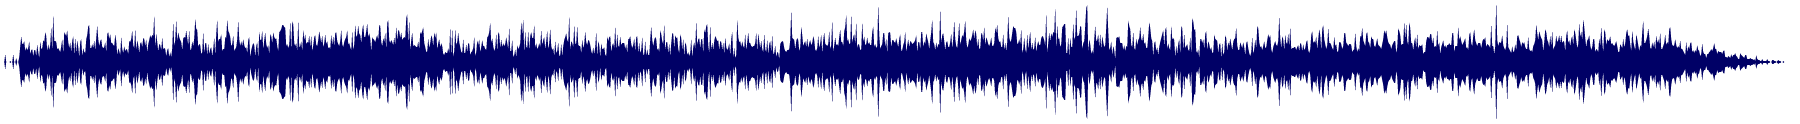 waveform of track #70703